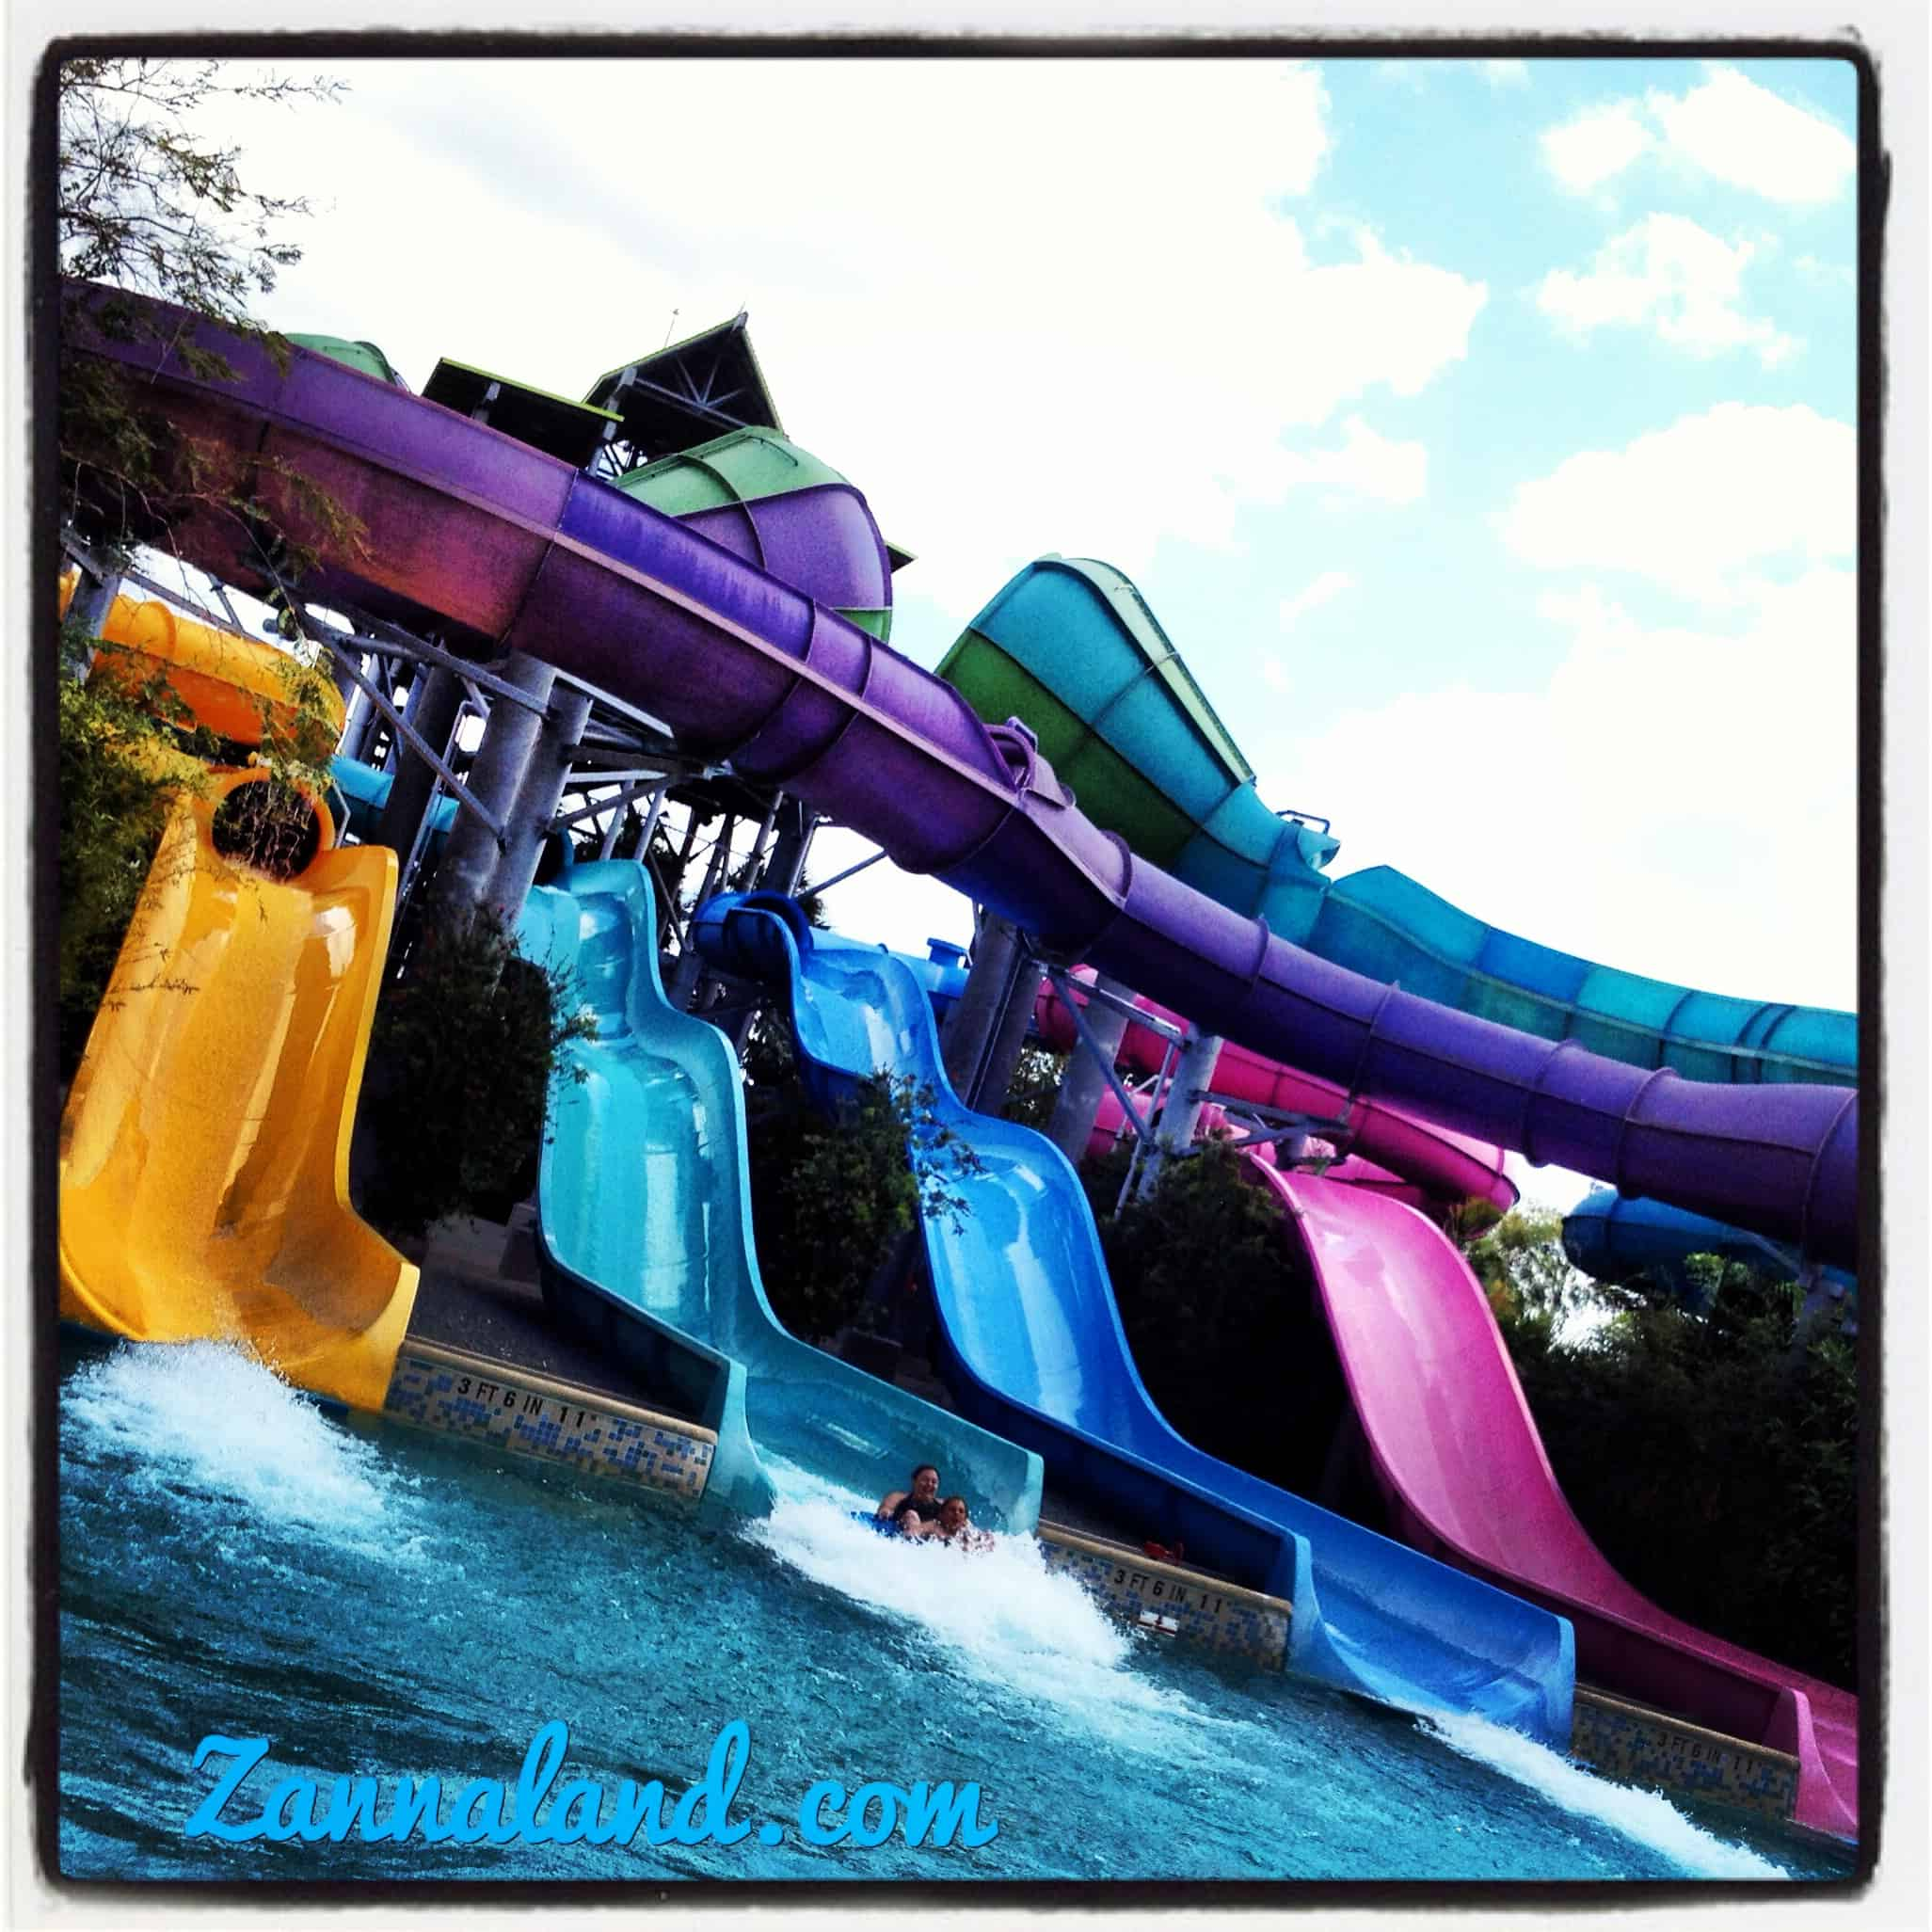 SeaWorld's Aquatica Water Park's 5th Birthday Celebration